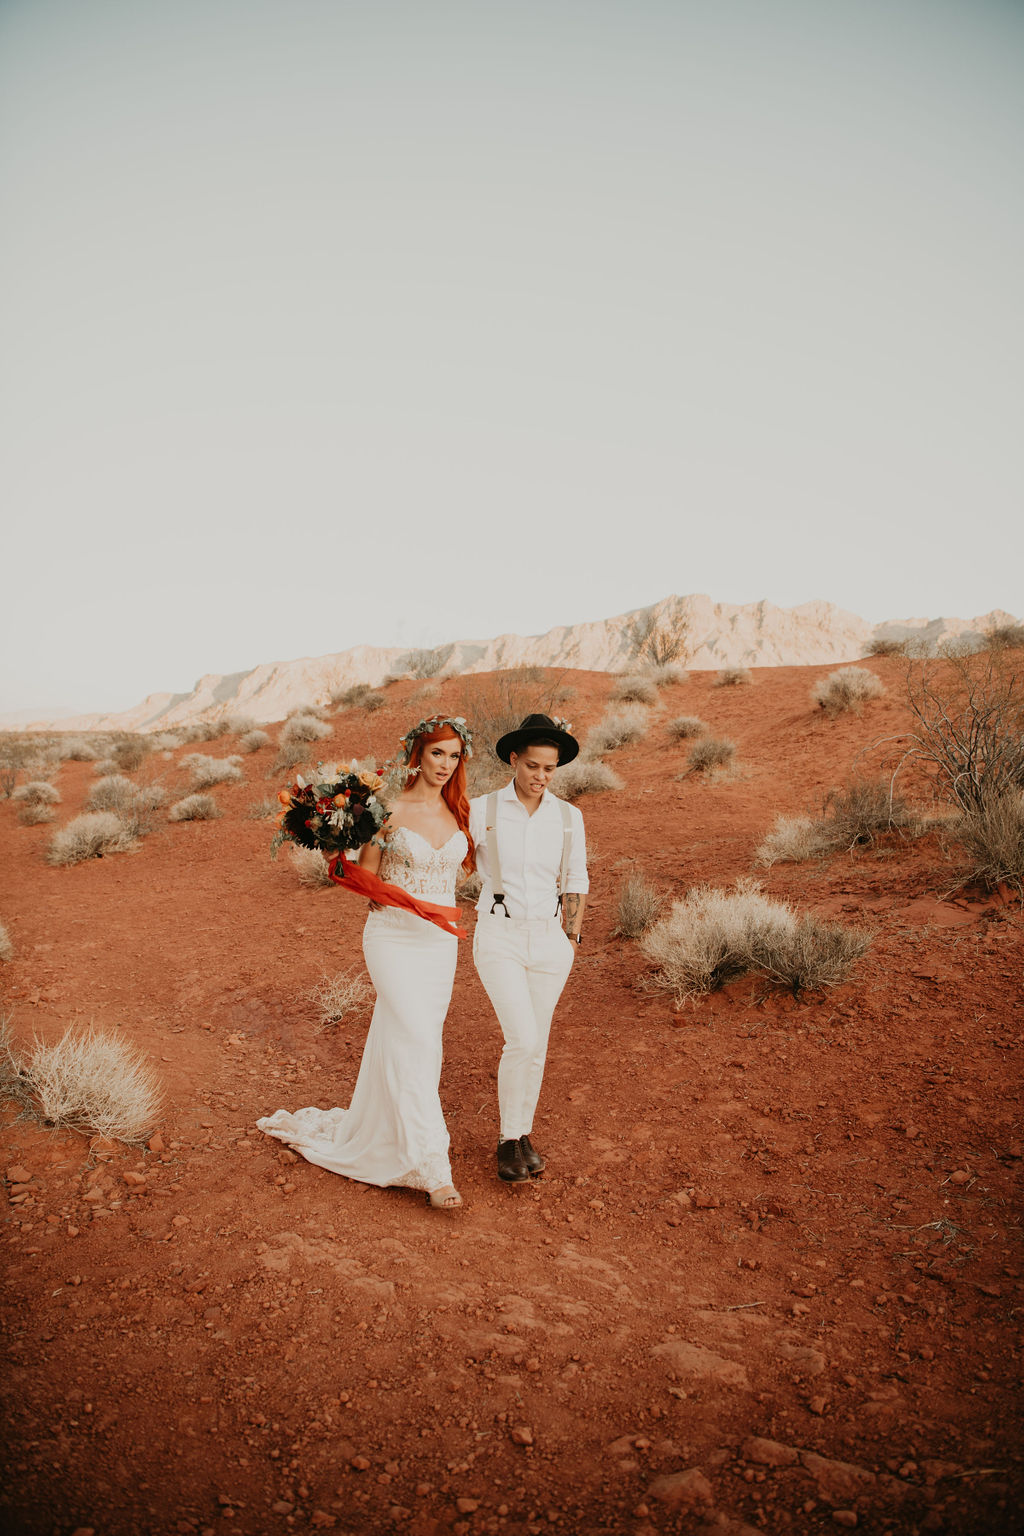 Bella Leigh Photography lesbian gay queer covid-19 elopement NevBella Leigh Photography lesbian gay queer covid-19 elopement Nevada USA Dancing With Her (1)ada USA Dancing With Her (1)